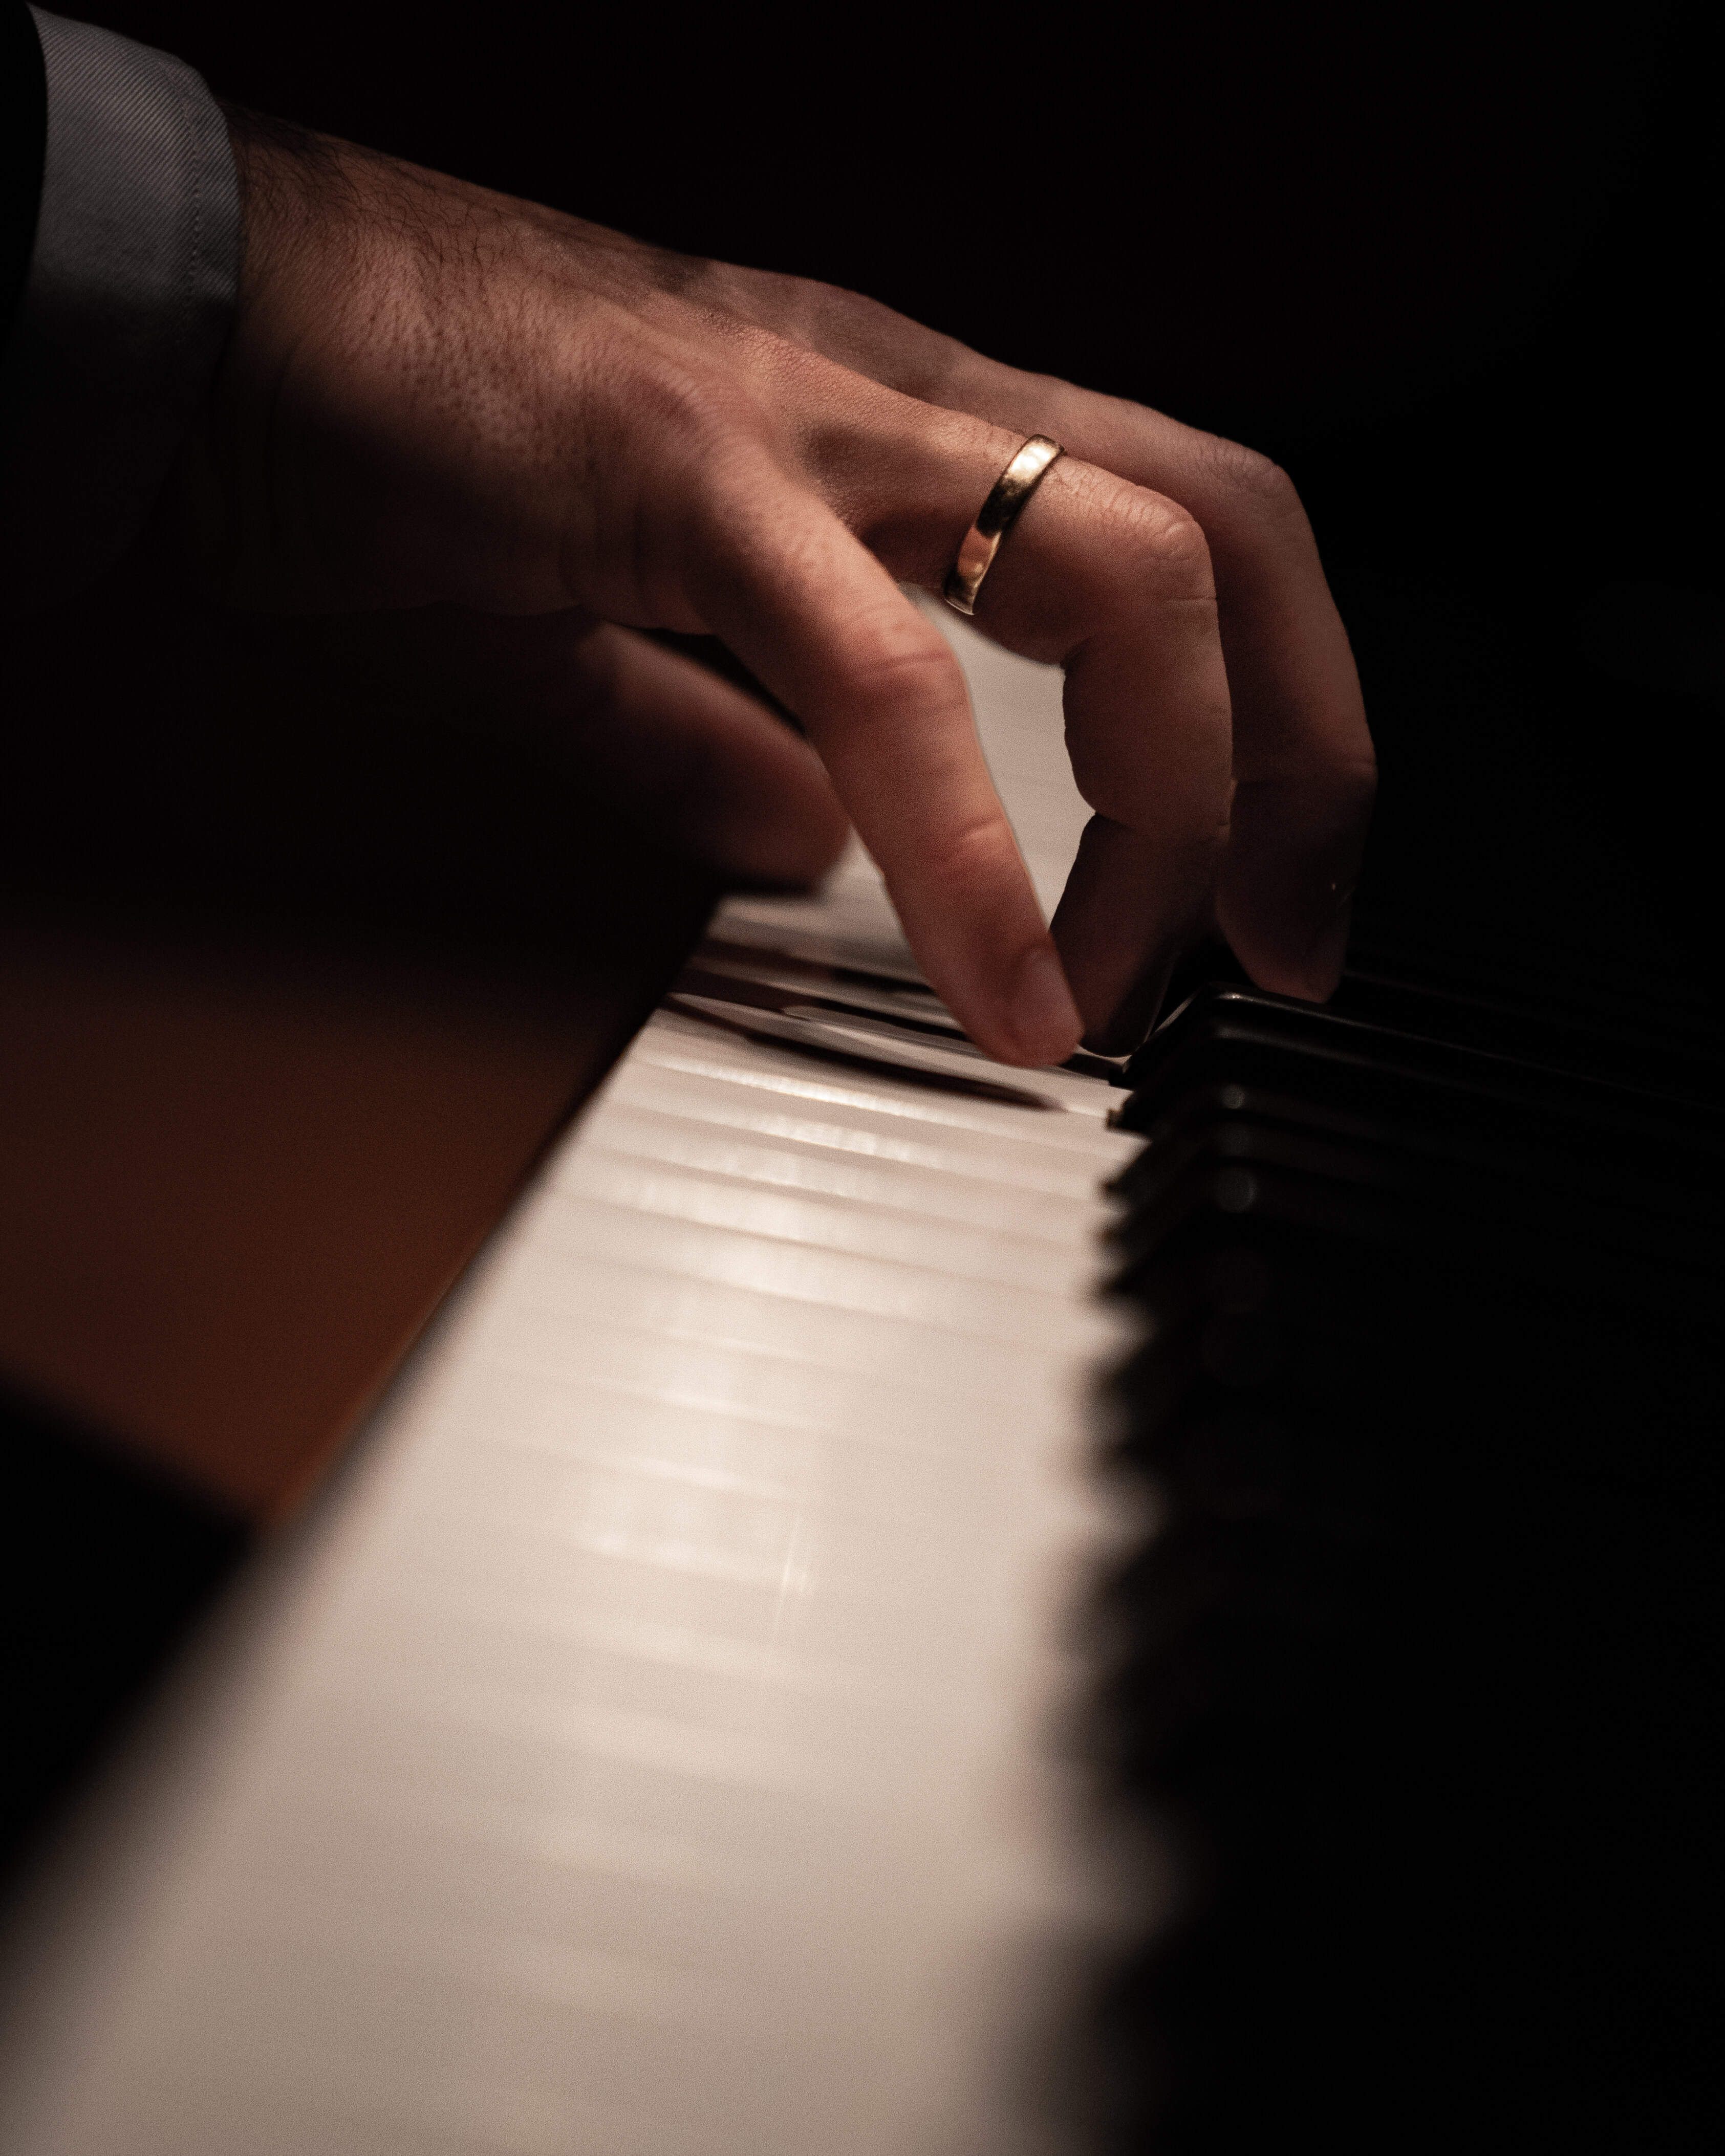 A hand on piano keys with a ring on it.